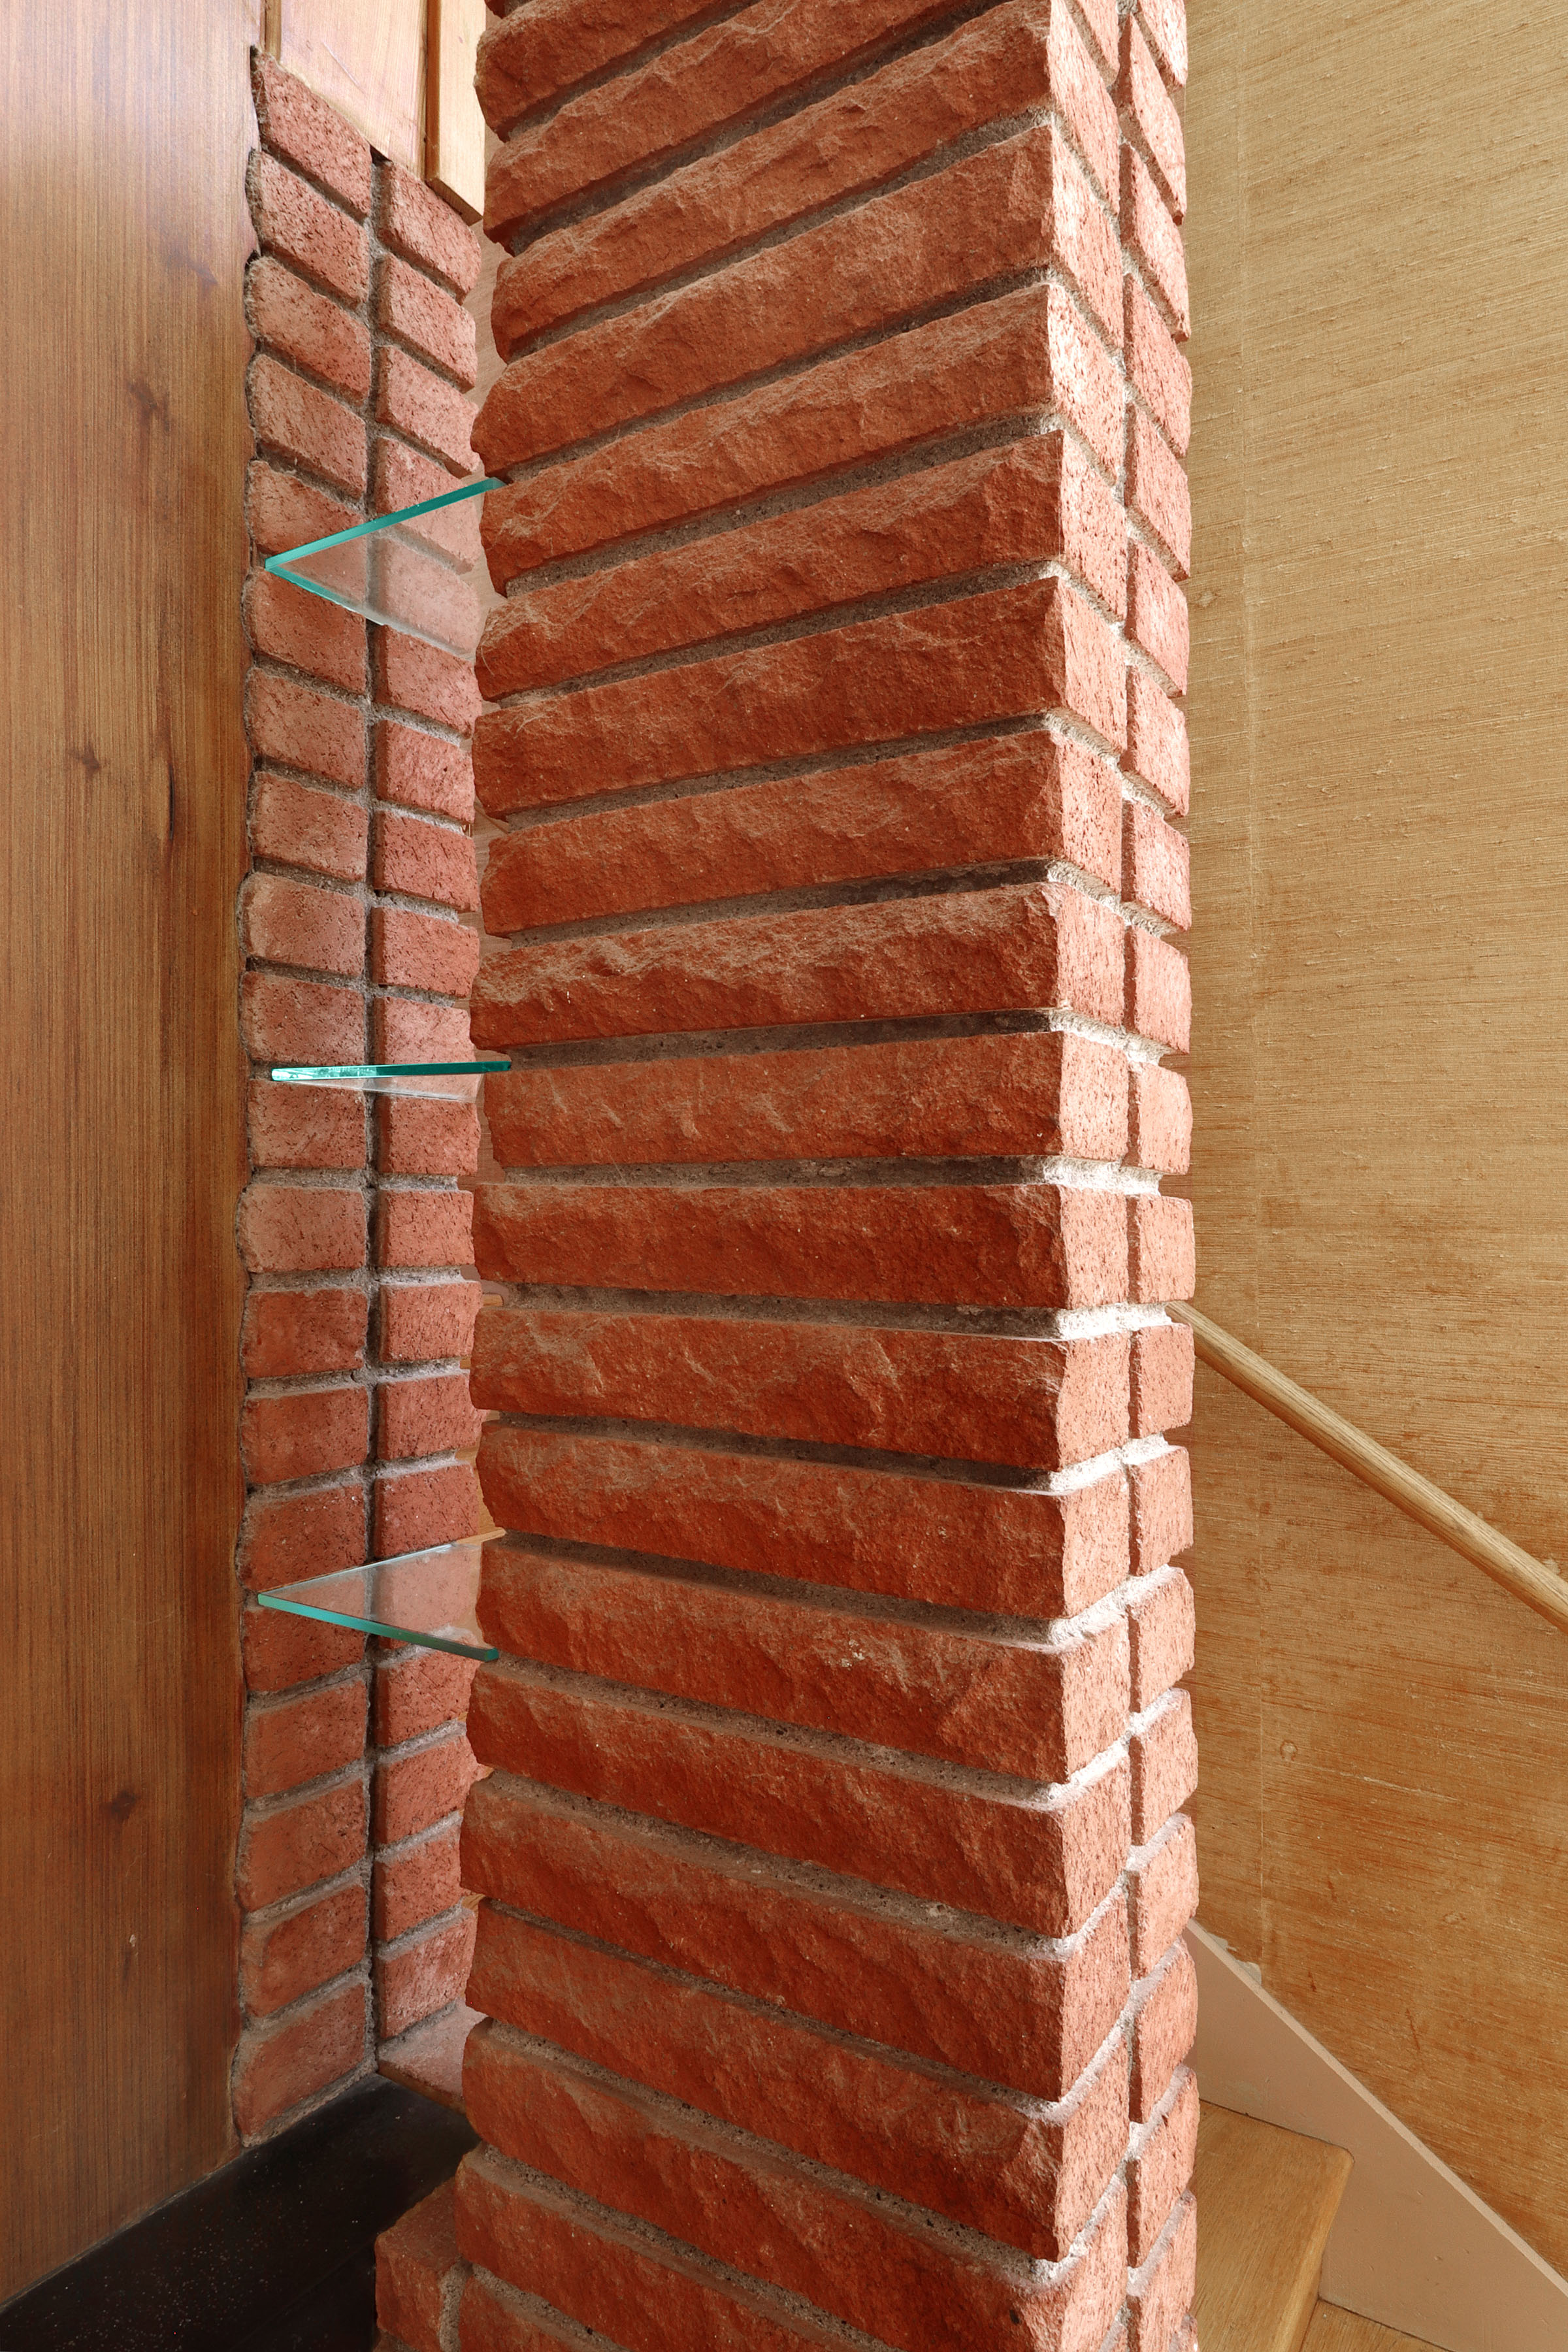 Fireplace Brick Piller with Glass Shelves